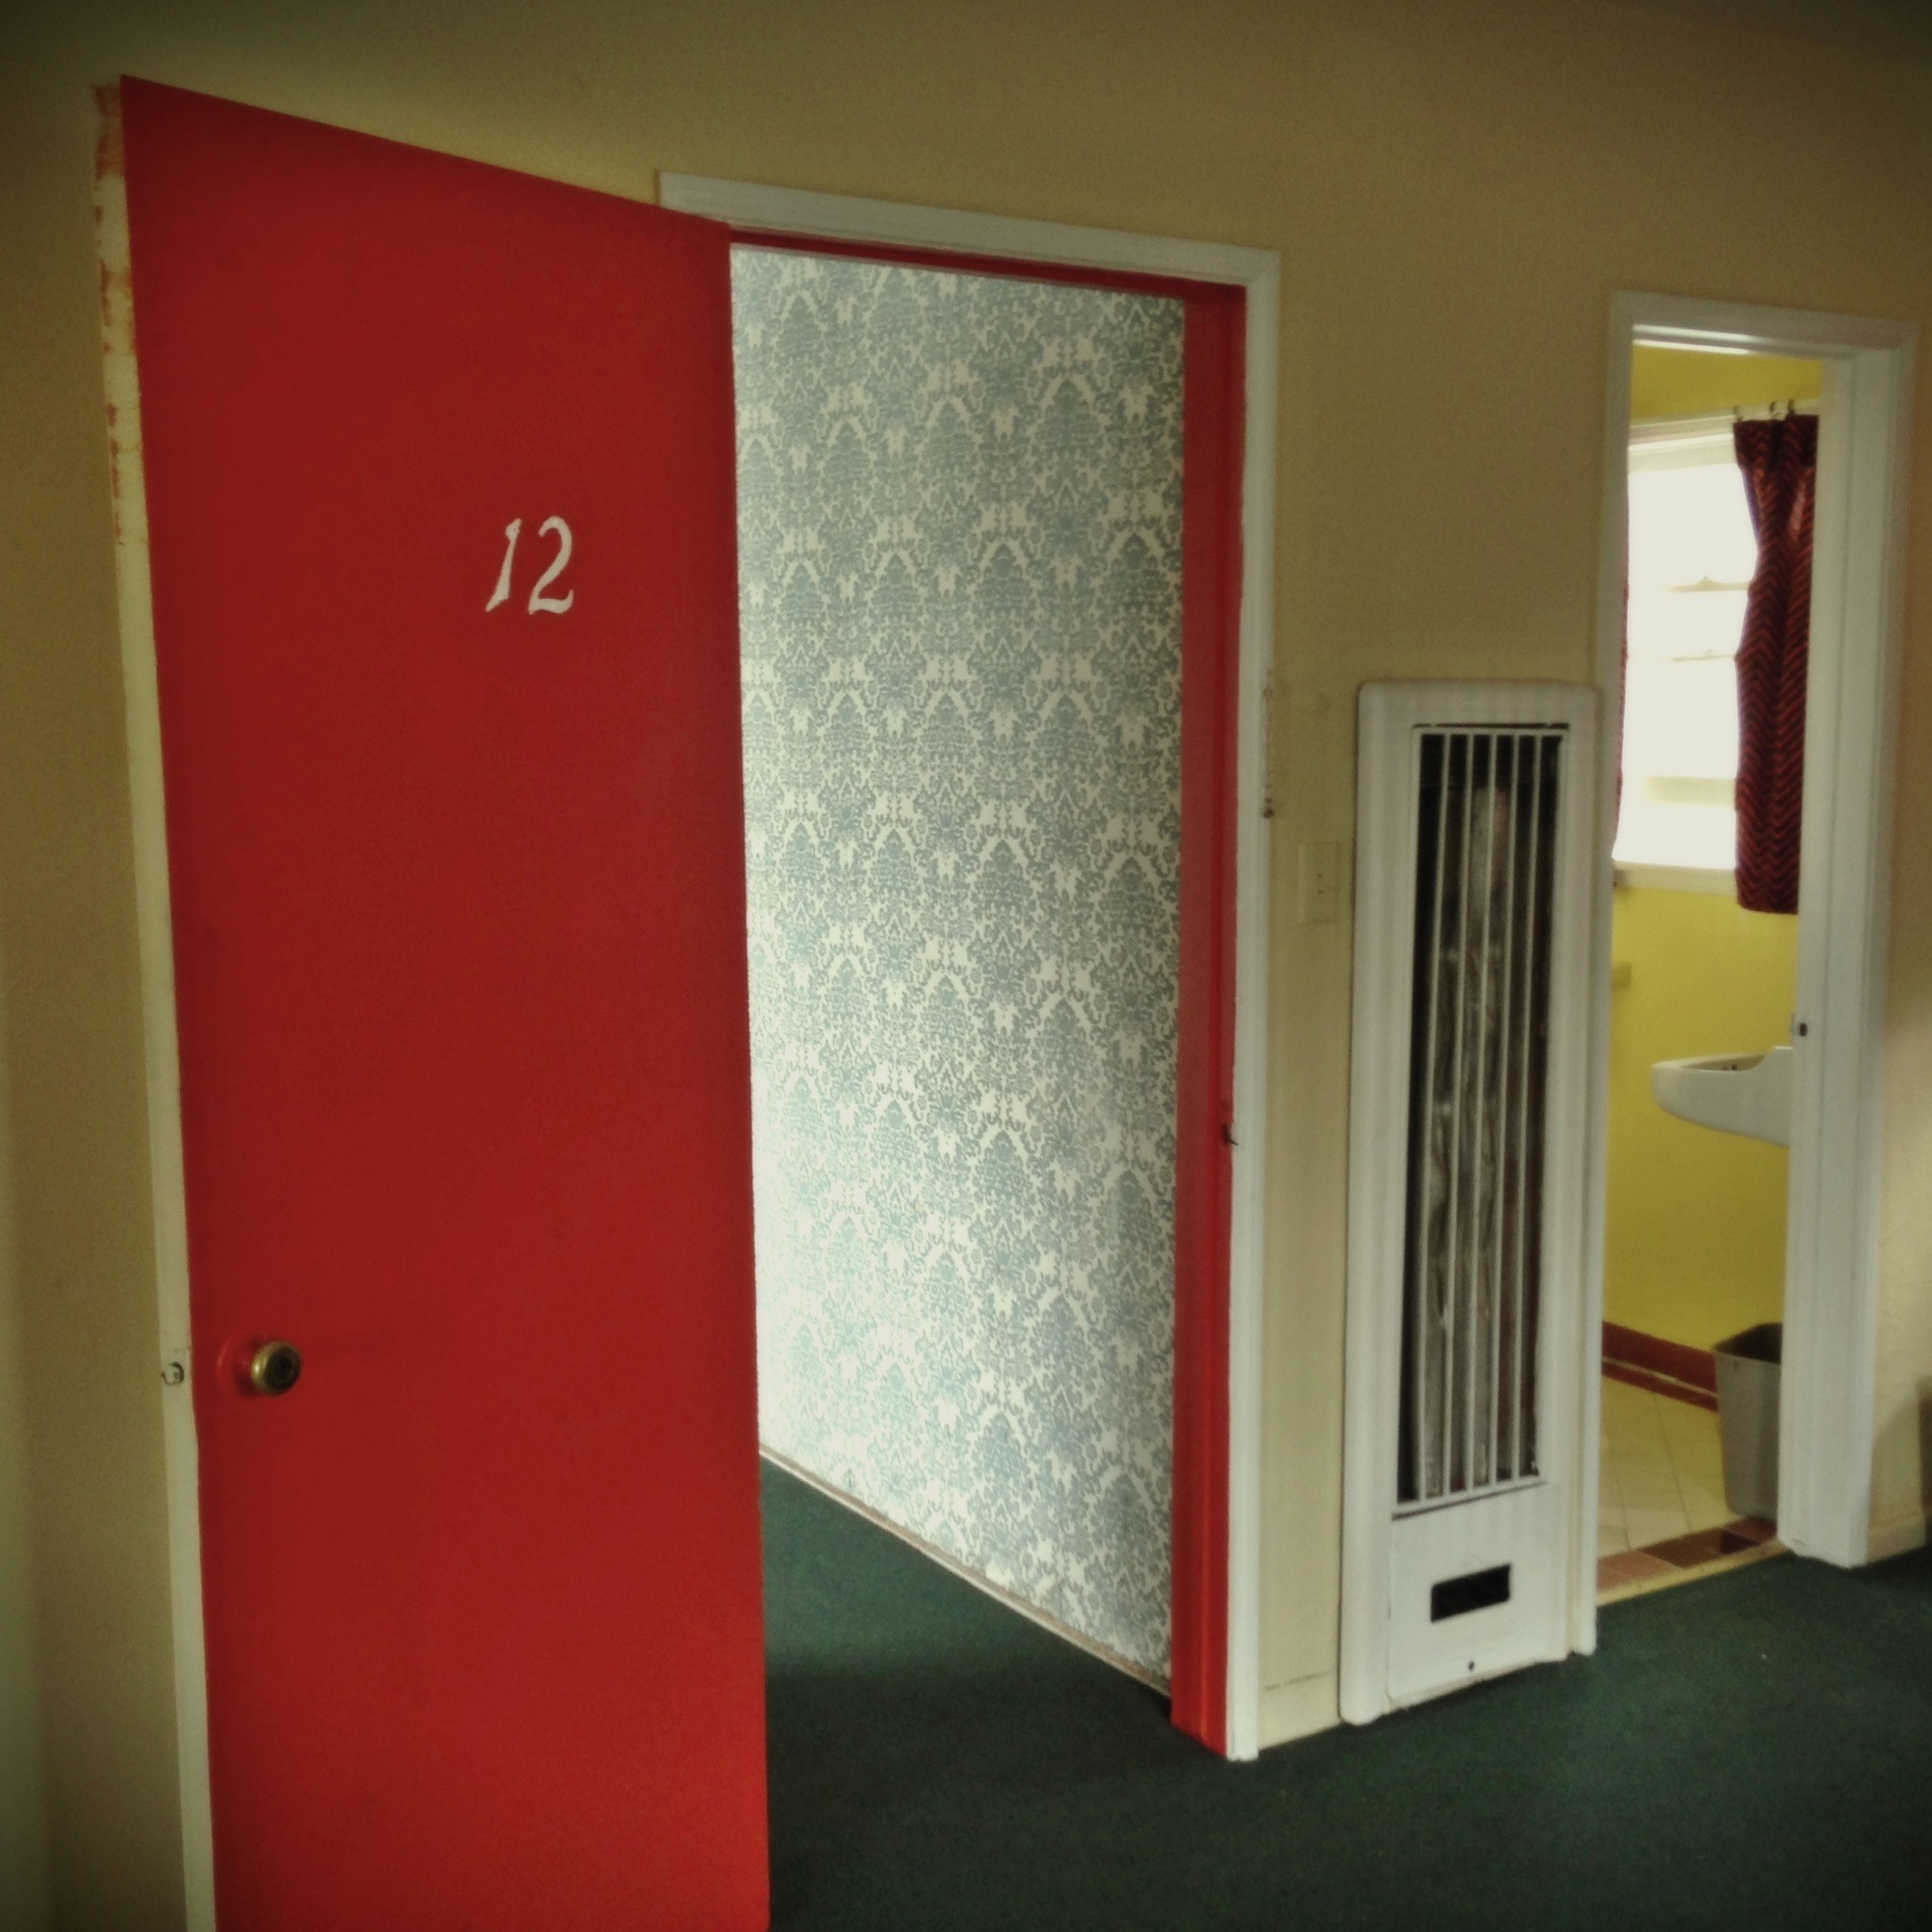 indoors, red, door, built structure, home interior, architecture, house, communication, window, wall - building feature, wall, text, closed, yellow, day, domestic room, office, open